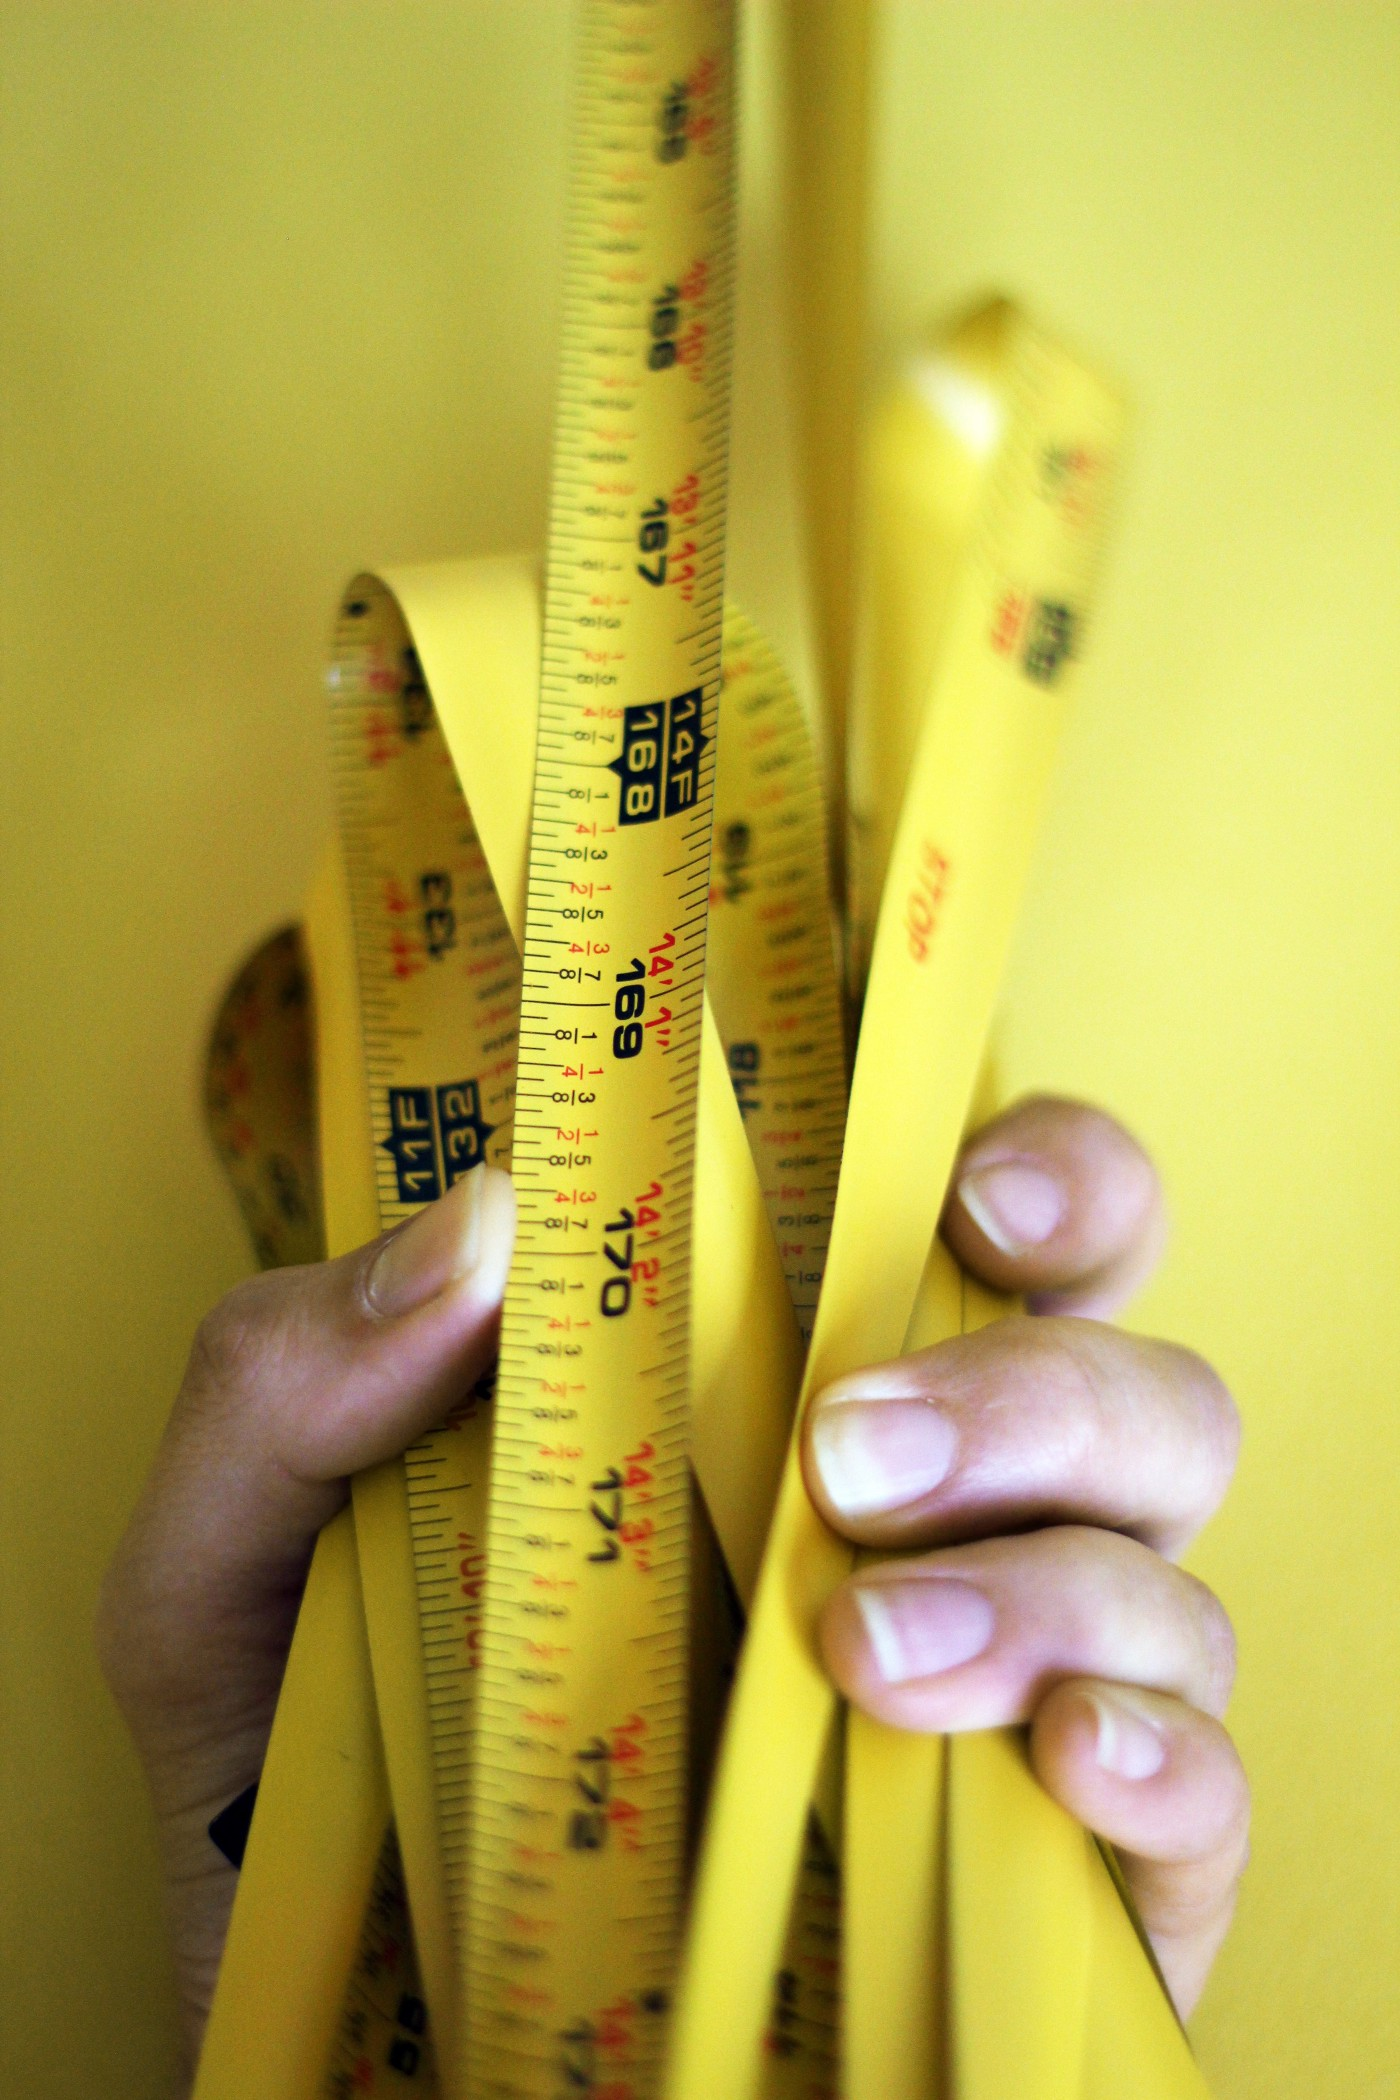 A hand holding a bunched up tape measure together. The 14 Foot marker is visible in the foreground, with several bunches of previous measurements behind it.